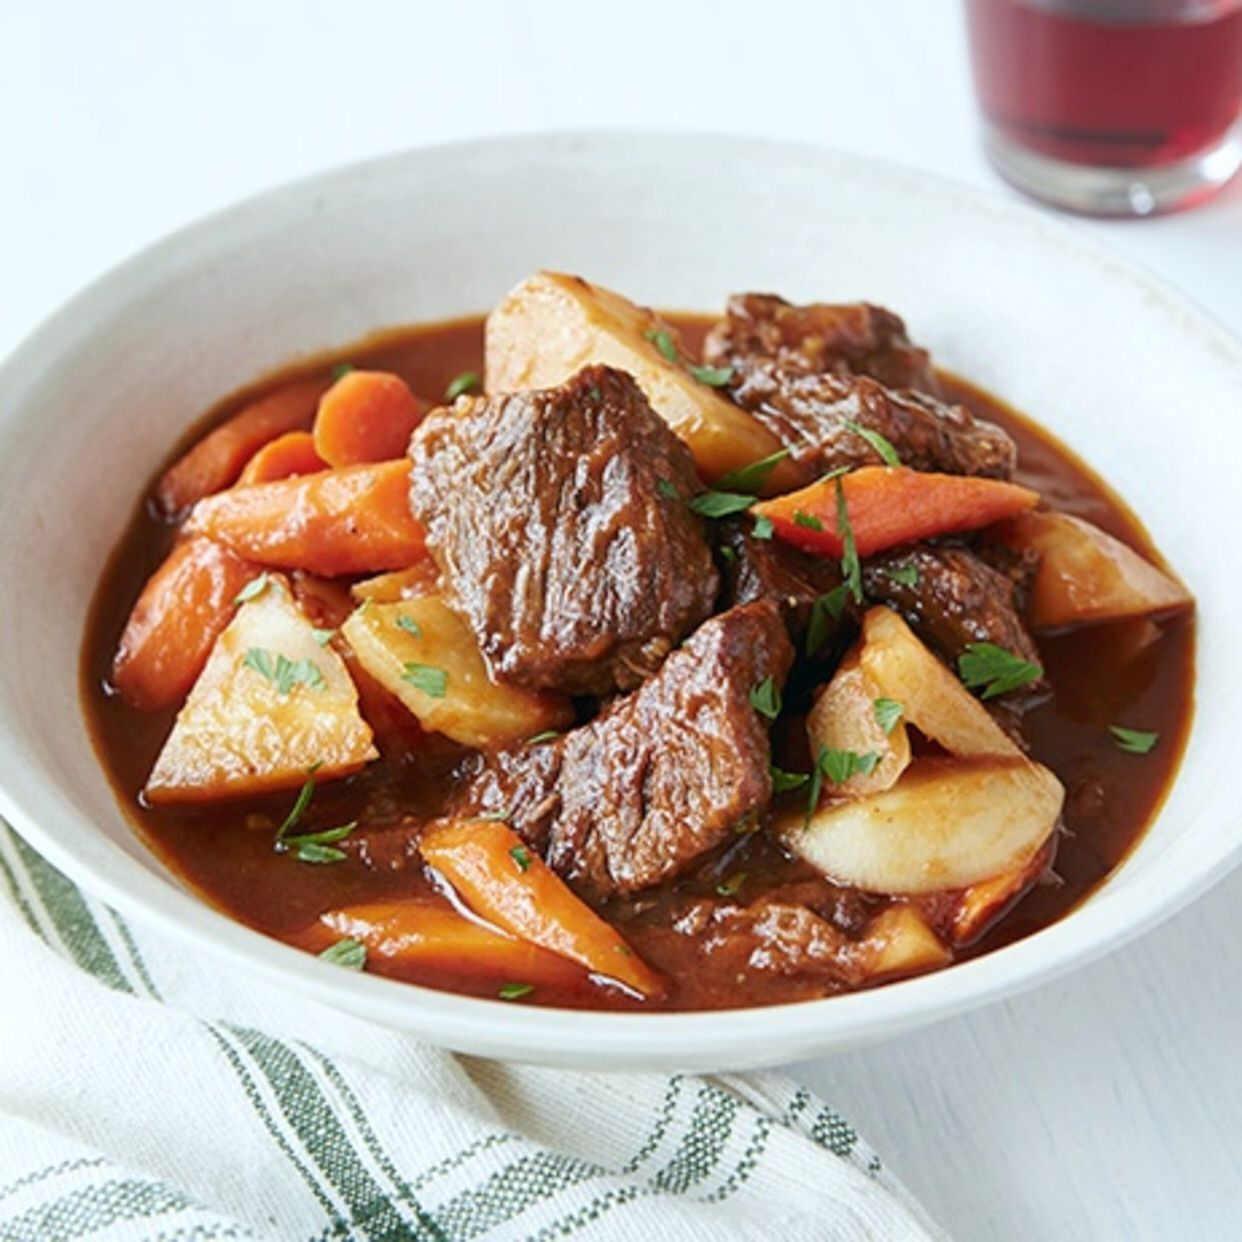 Beef Stew With Root Vegetables Recipe Hearty Beef Stew Recipes Root Vegetables Recipes Hearty Beef Stew